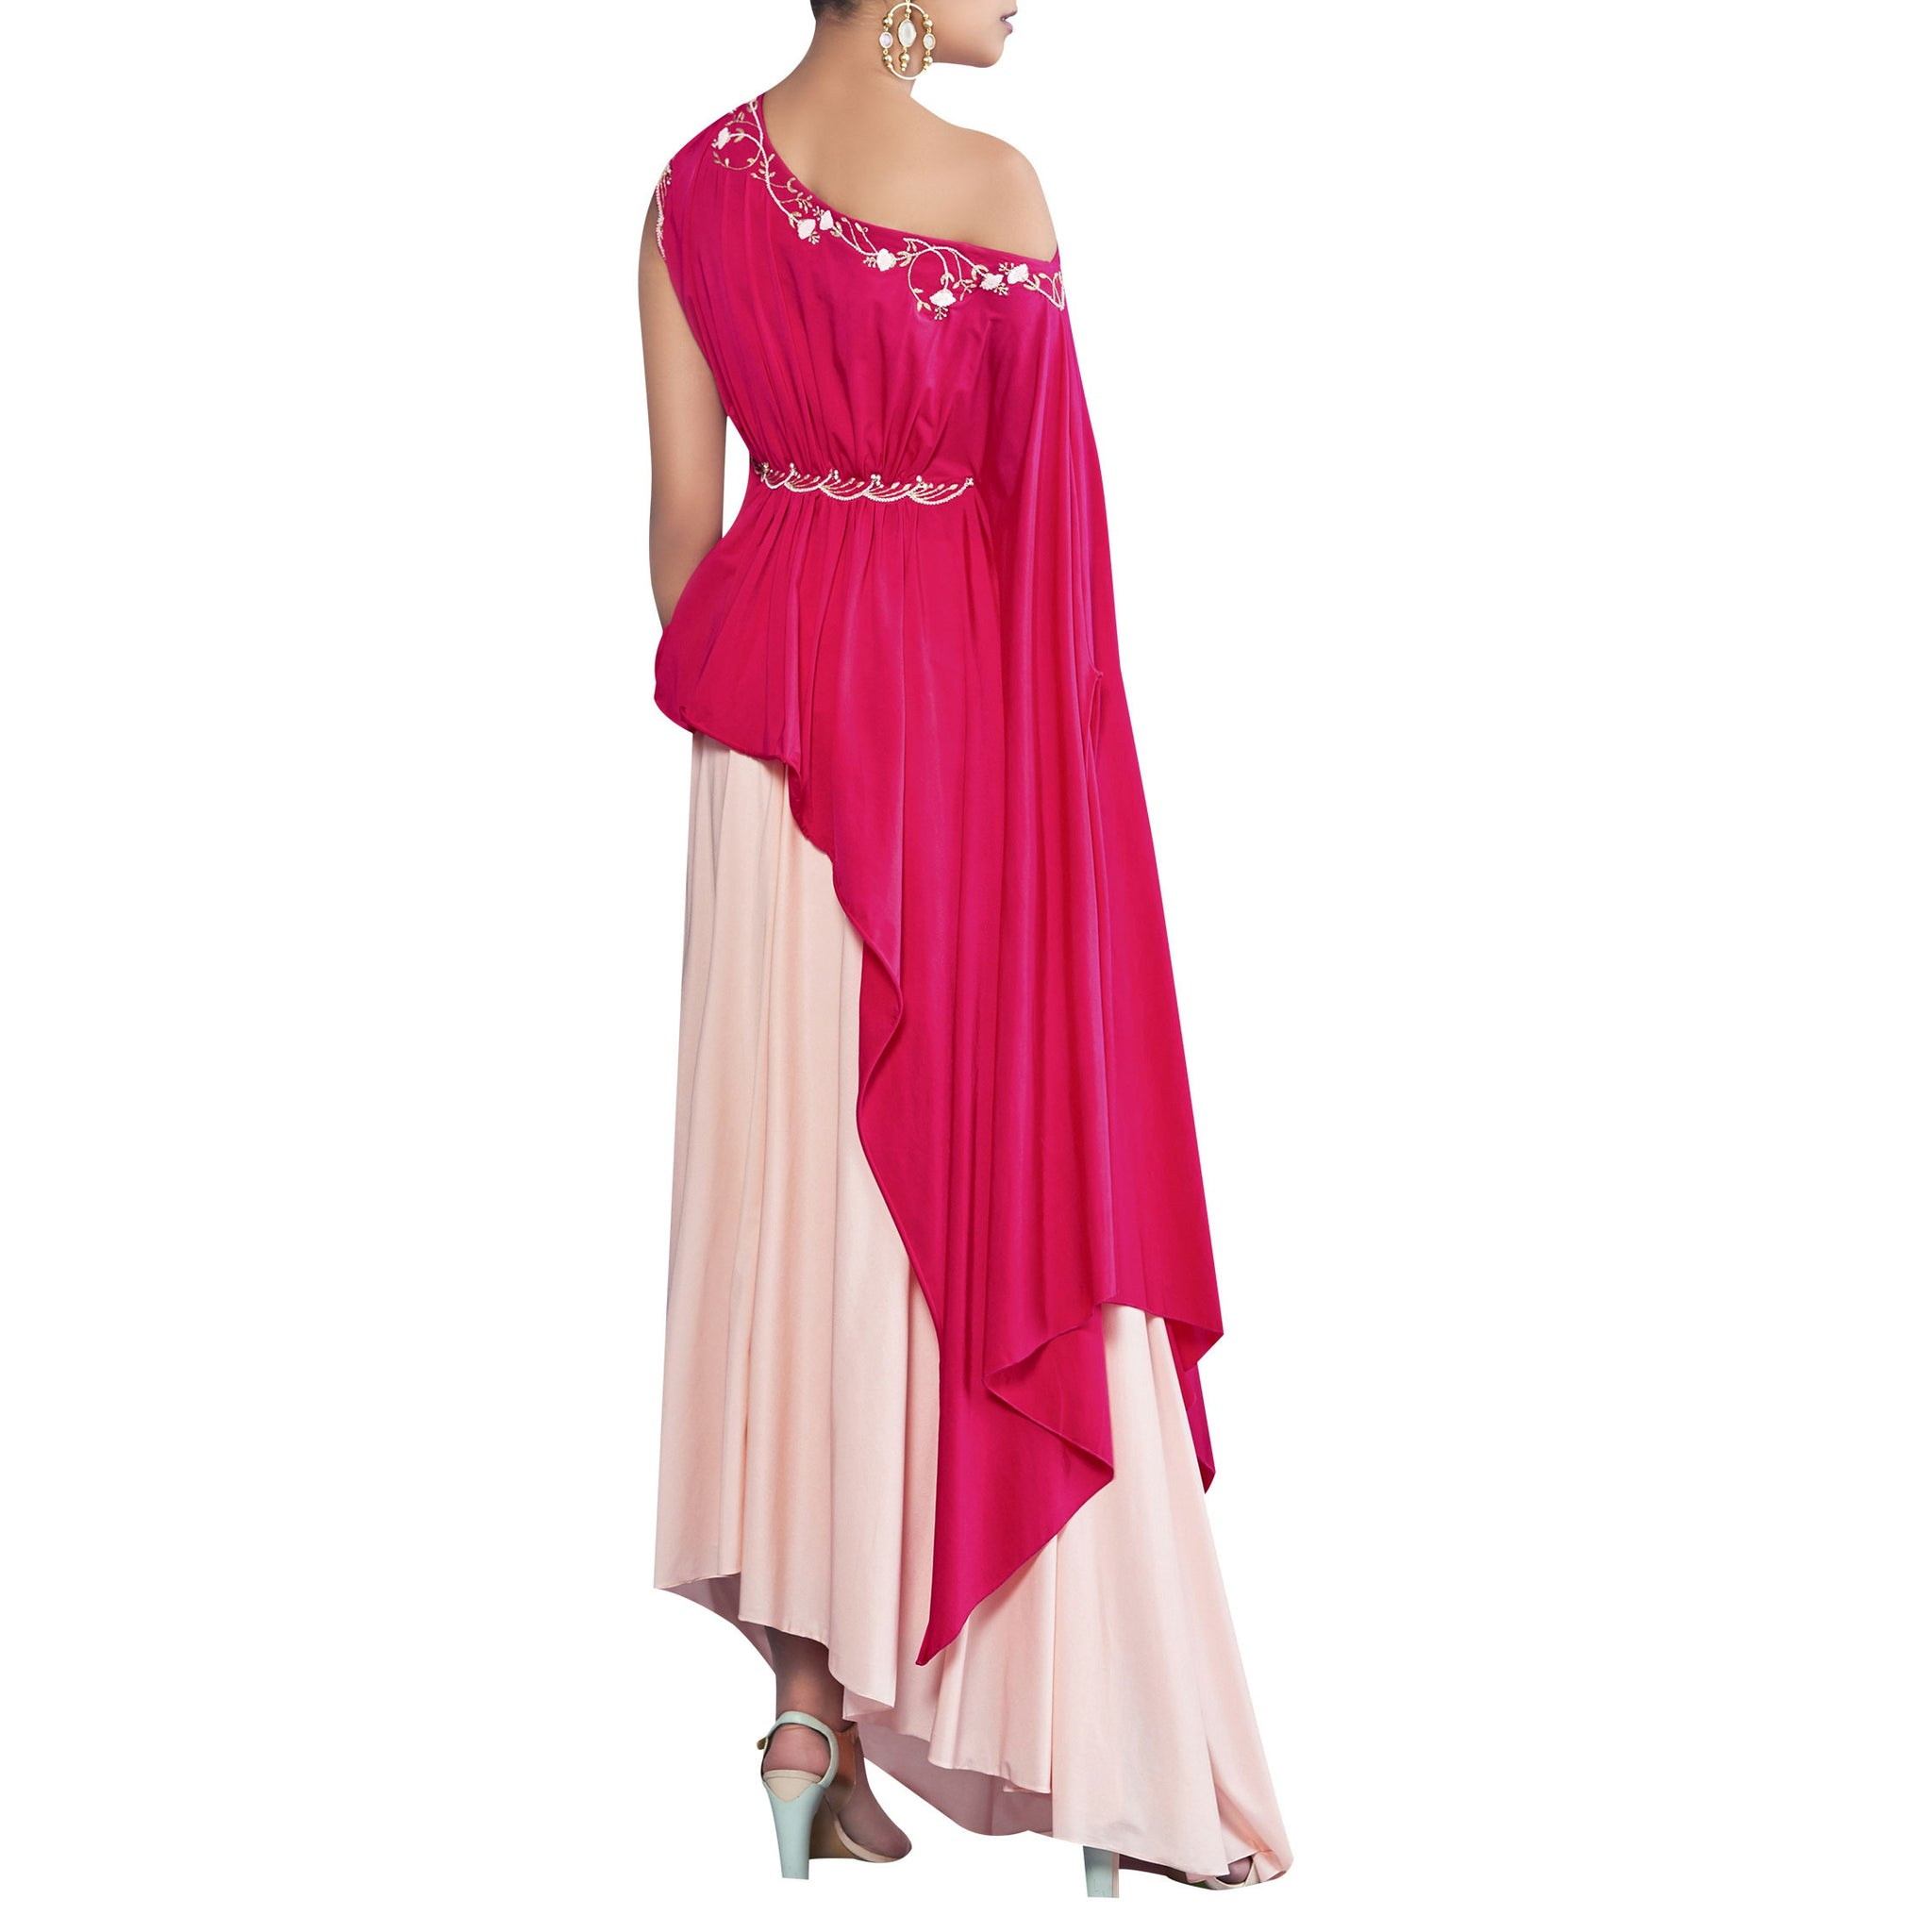 One-Shoulder Draped Top with Dhoti Skirt